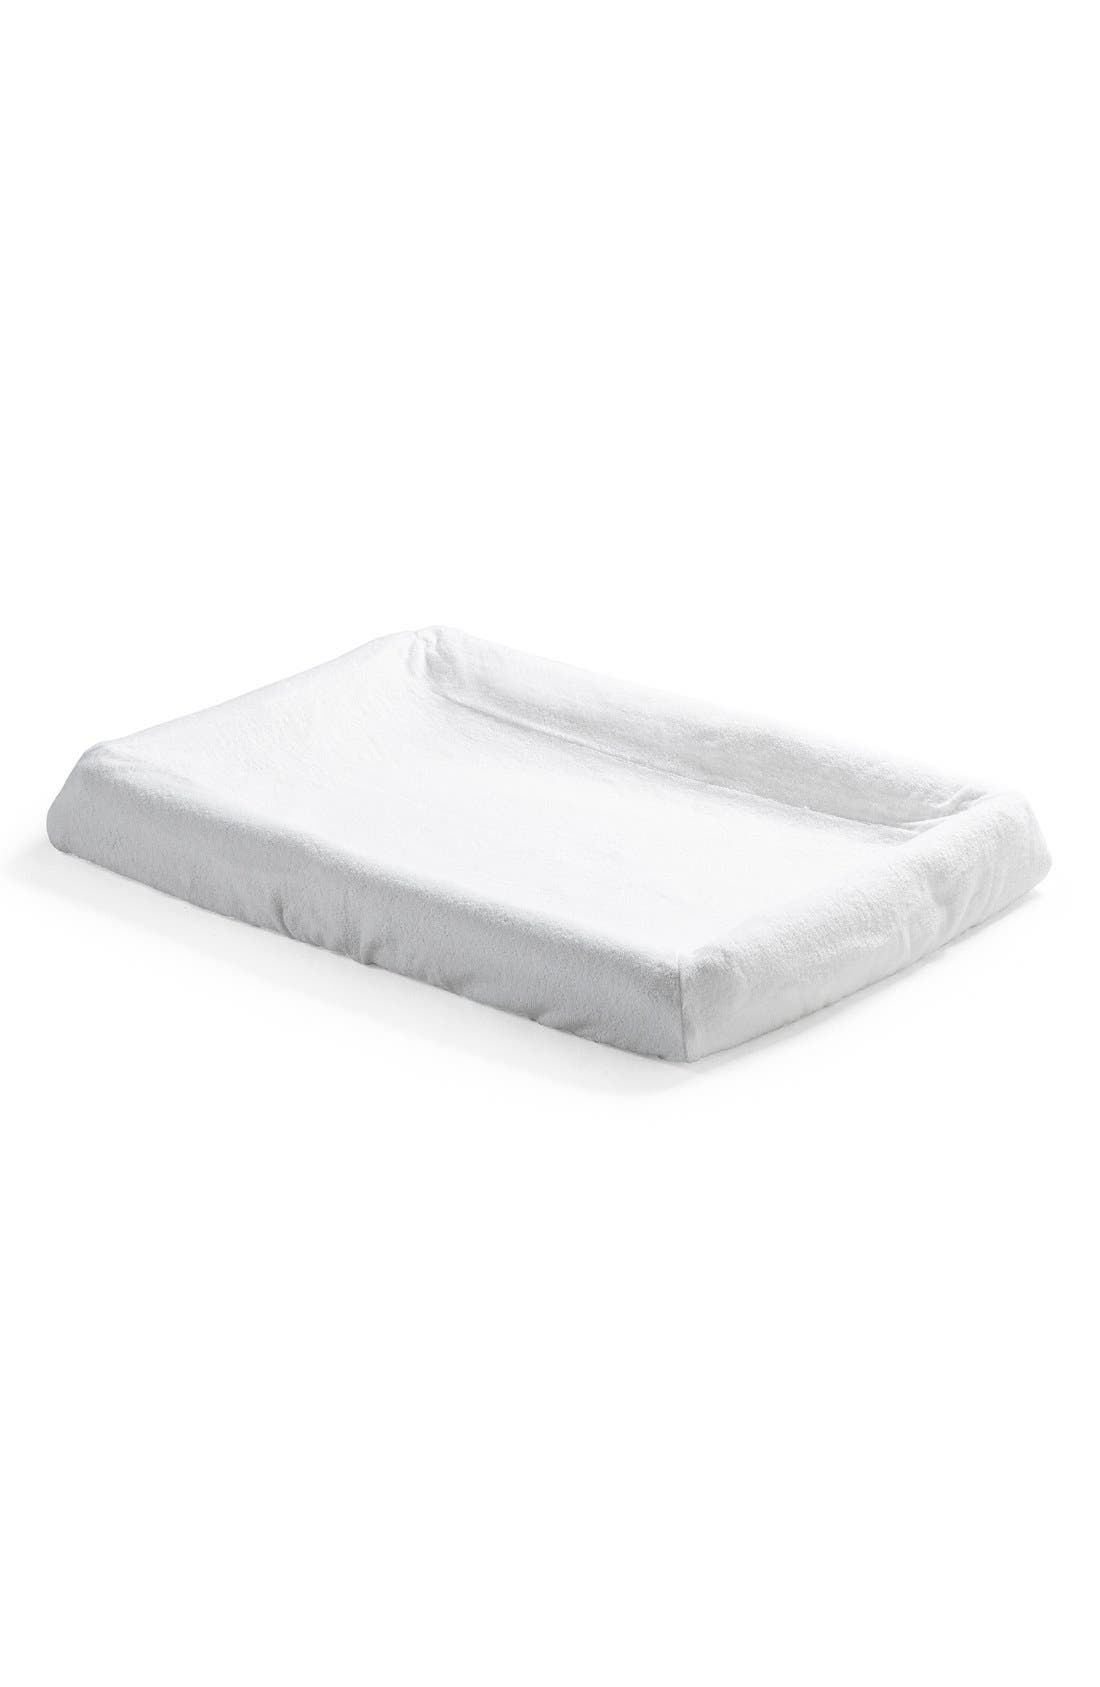 'Home<sup>™</sup>' Changer Mattress Cover,                         Main,                         color, 100